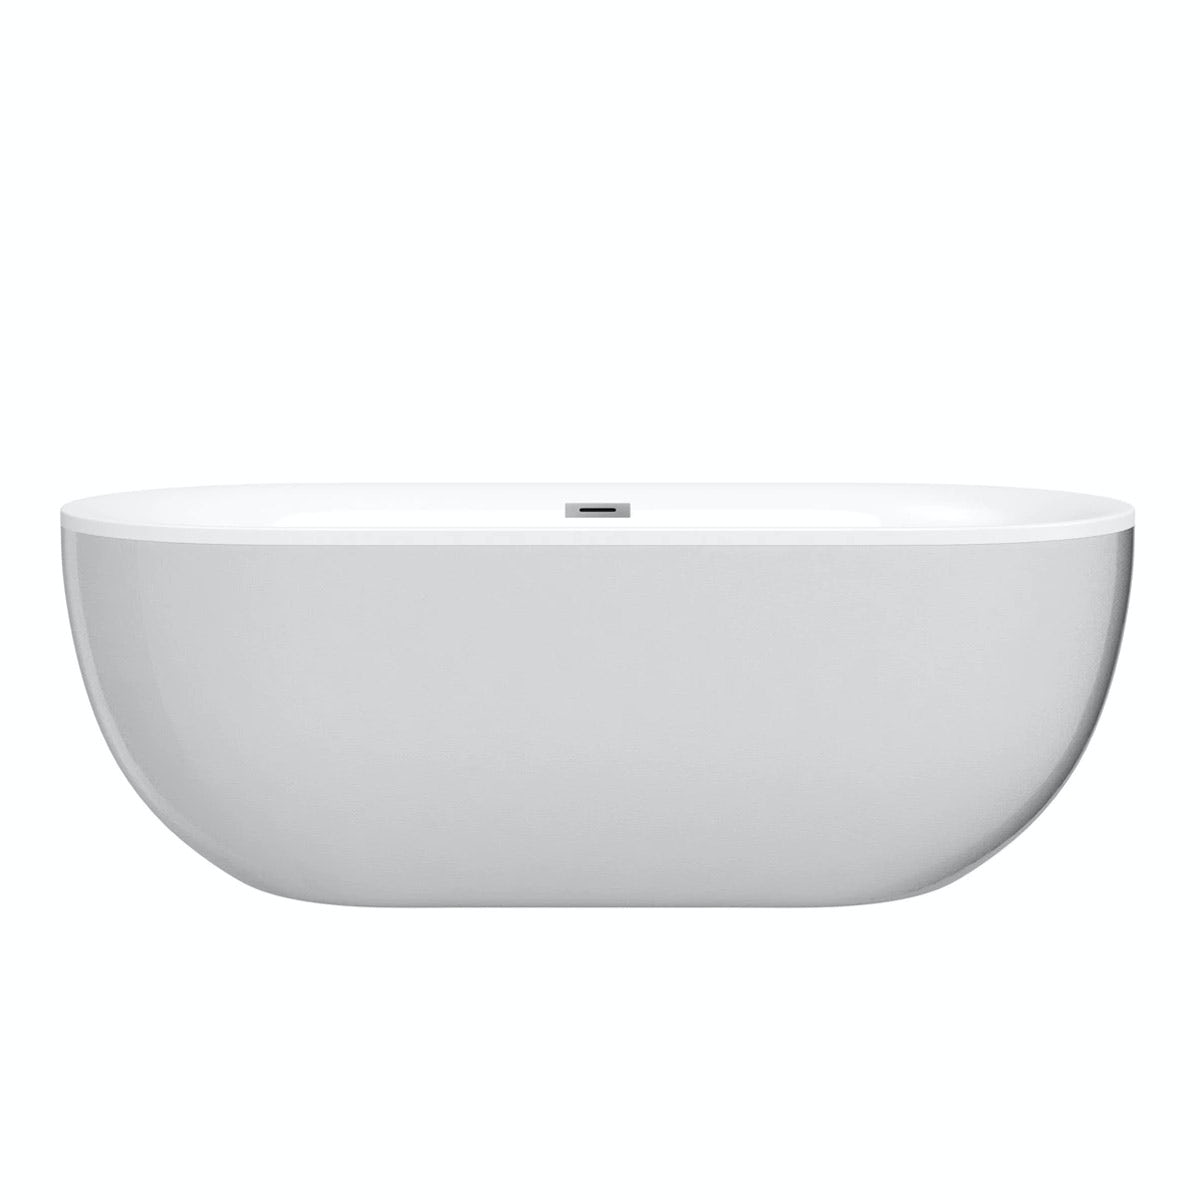 Mode Ellis pearl coloured freestanding bath